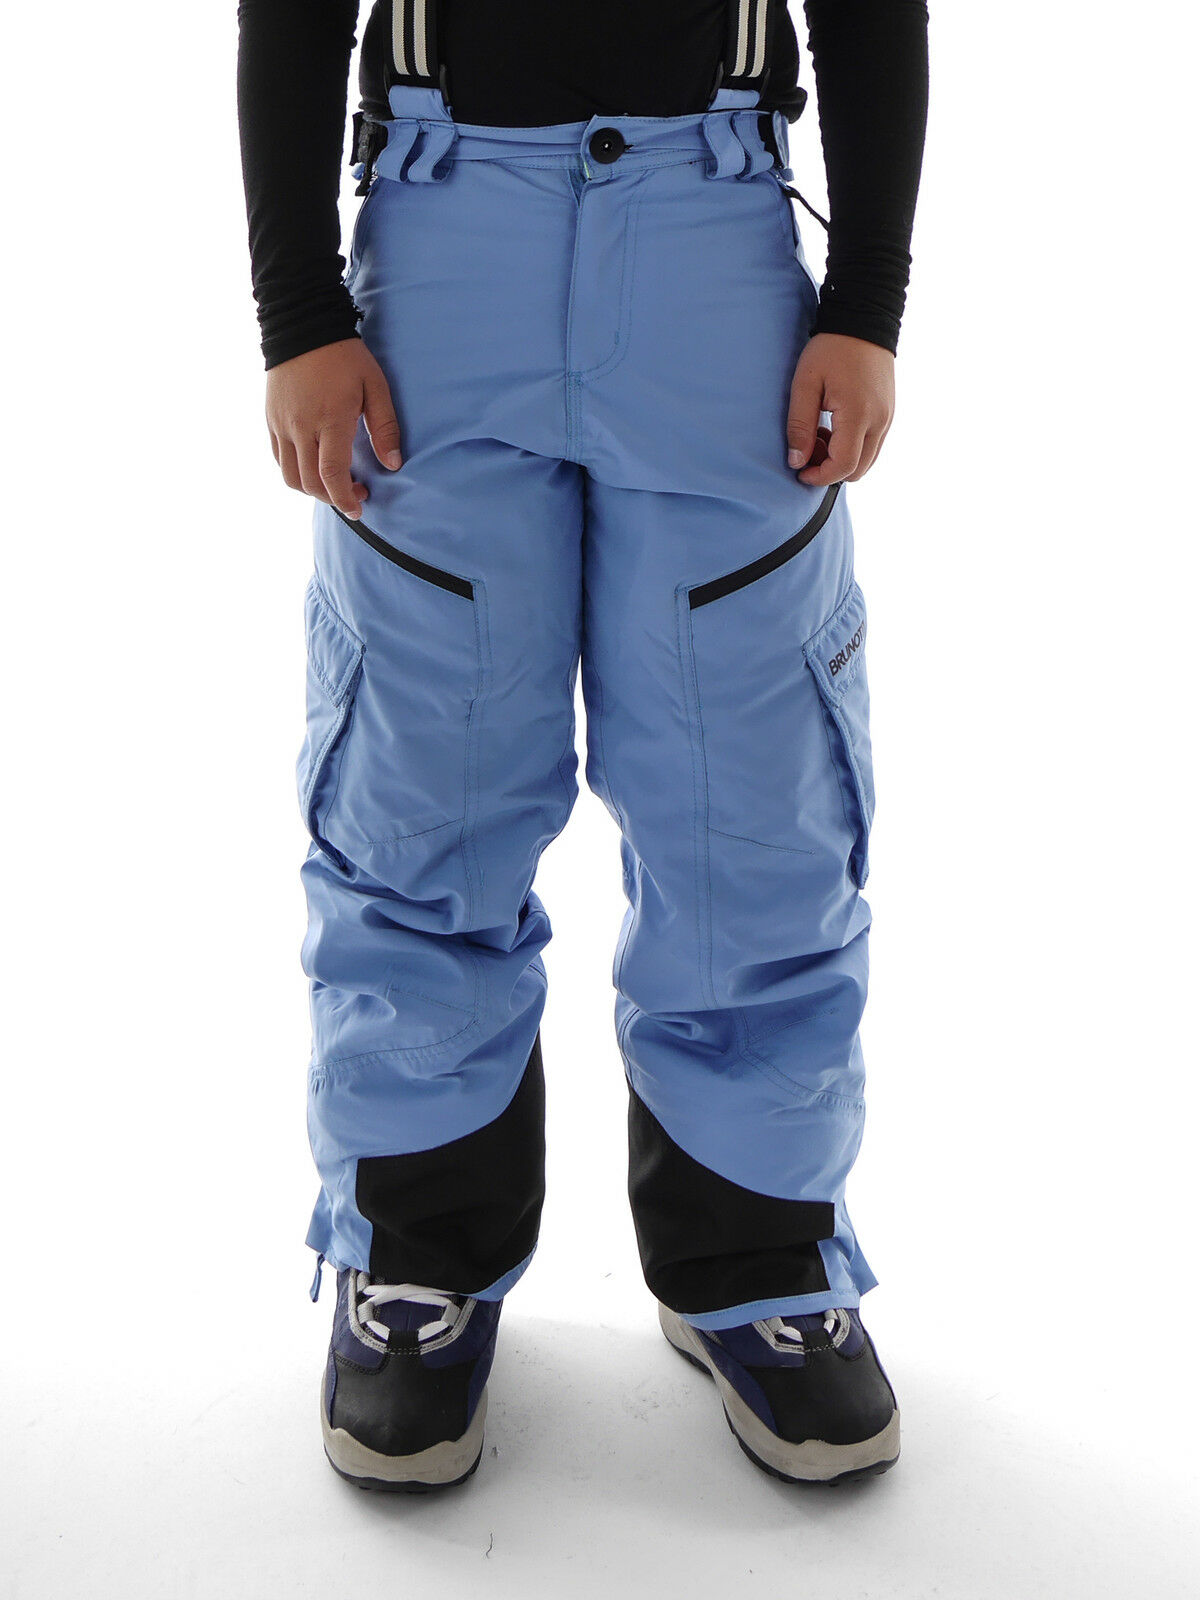 Brunotti Ski Pants  Douglasy Jr blue Suspenders 0 5 16in Snow Guard  classic fashion